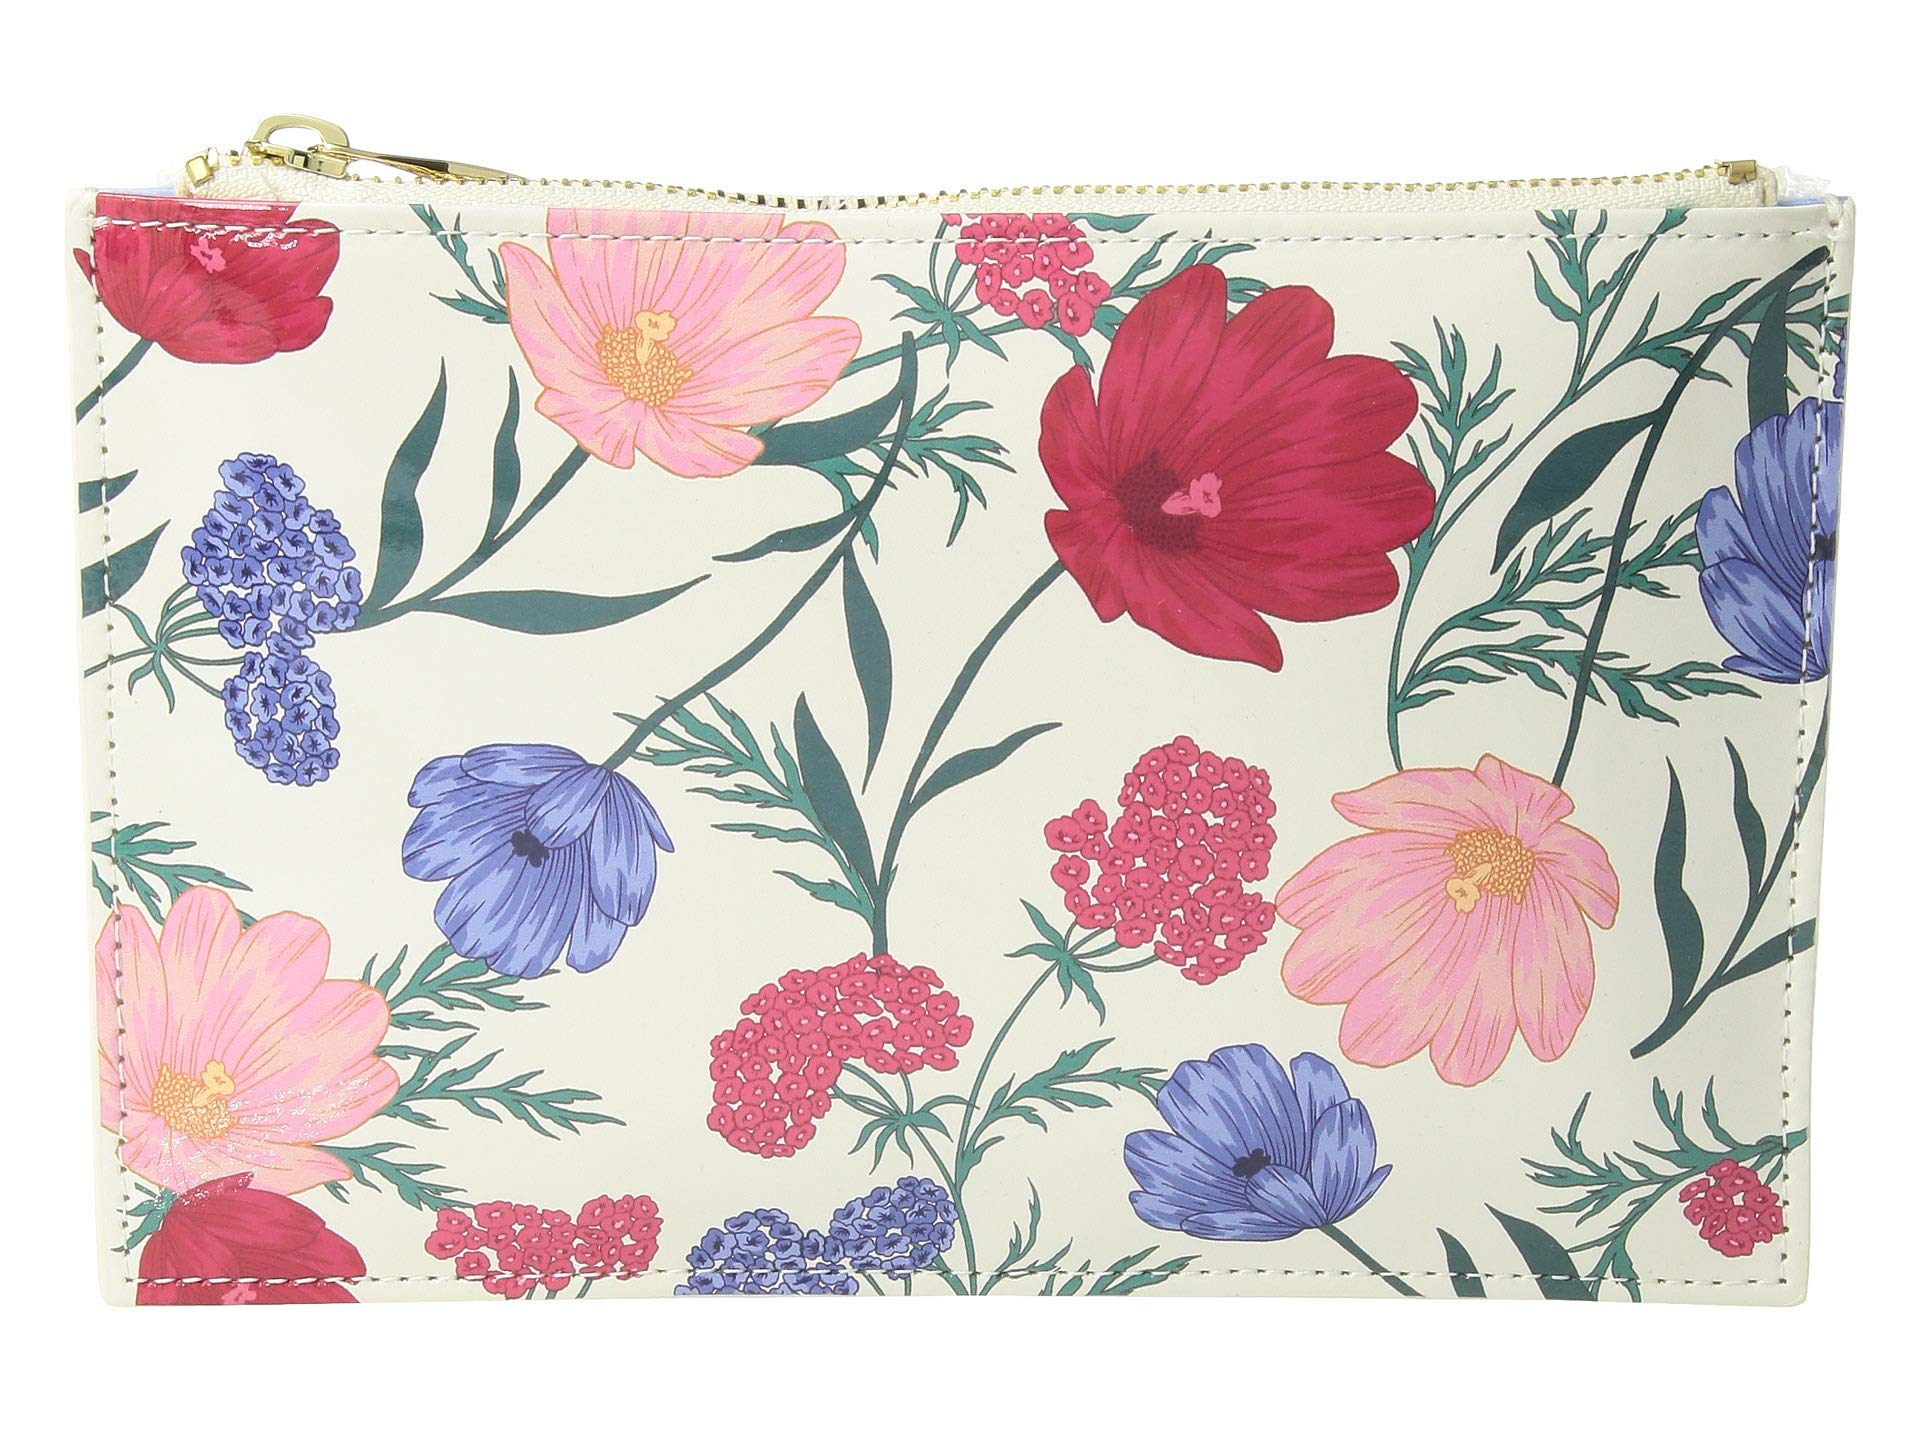 Kate Spade New York Women's Blossom Pencil Pouch Multi One Size by Kate Spade New York